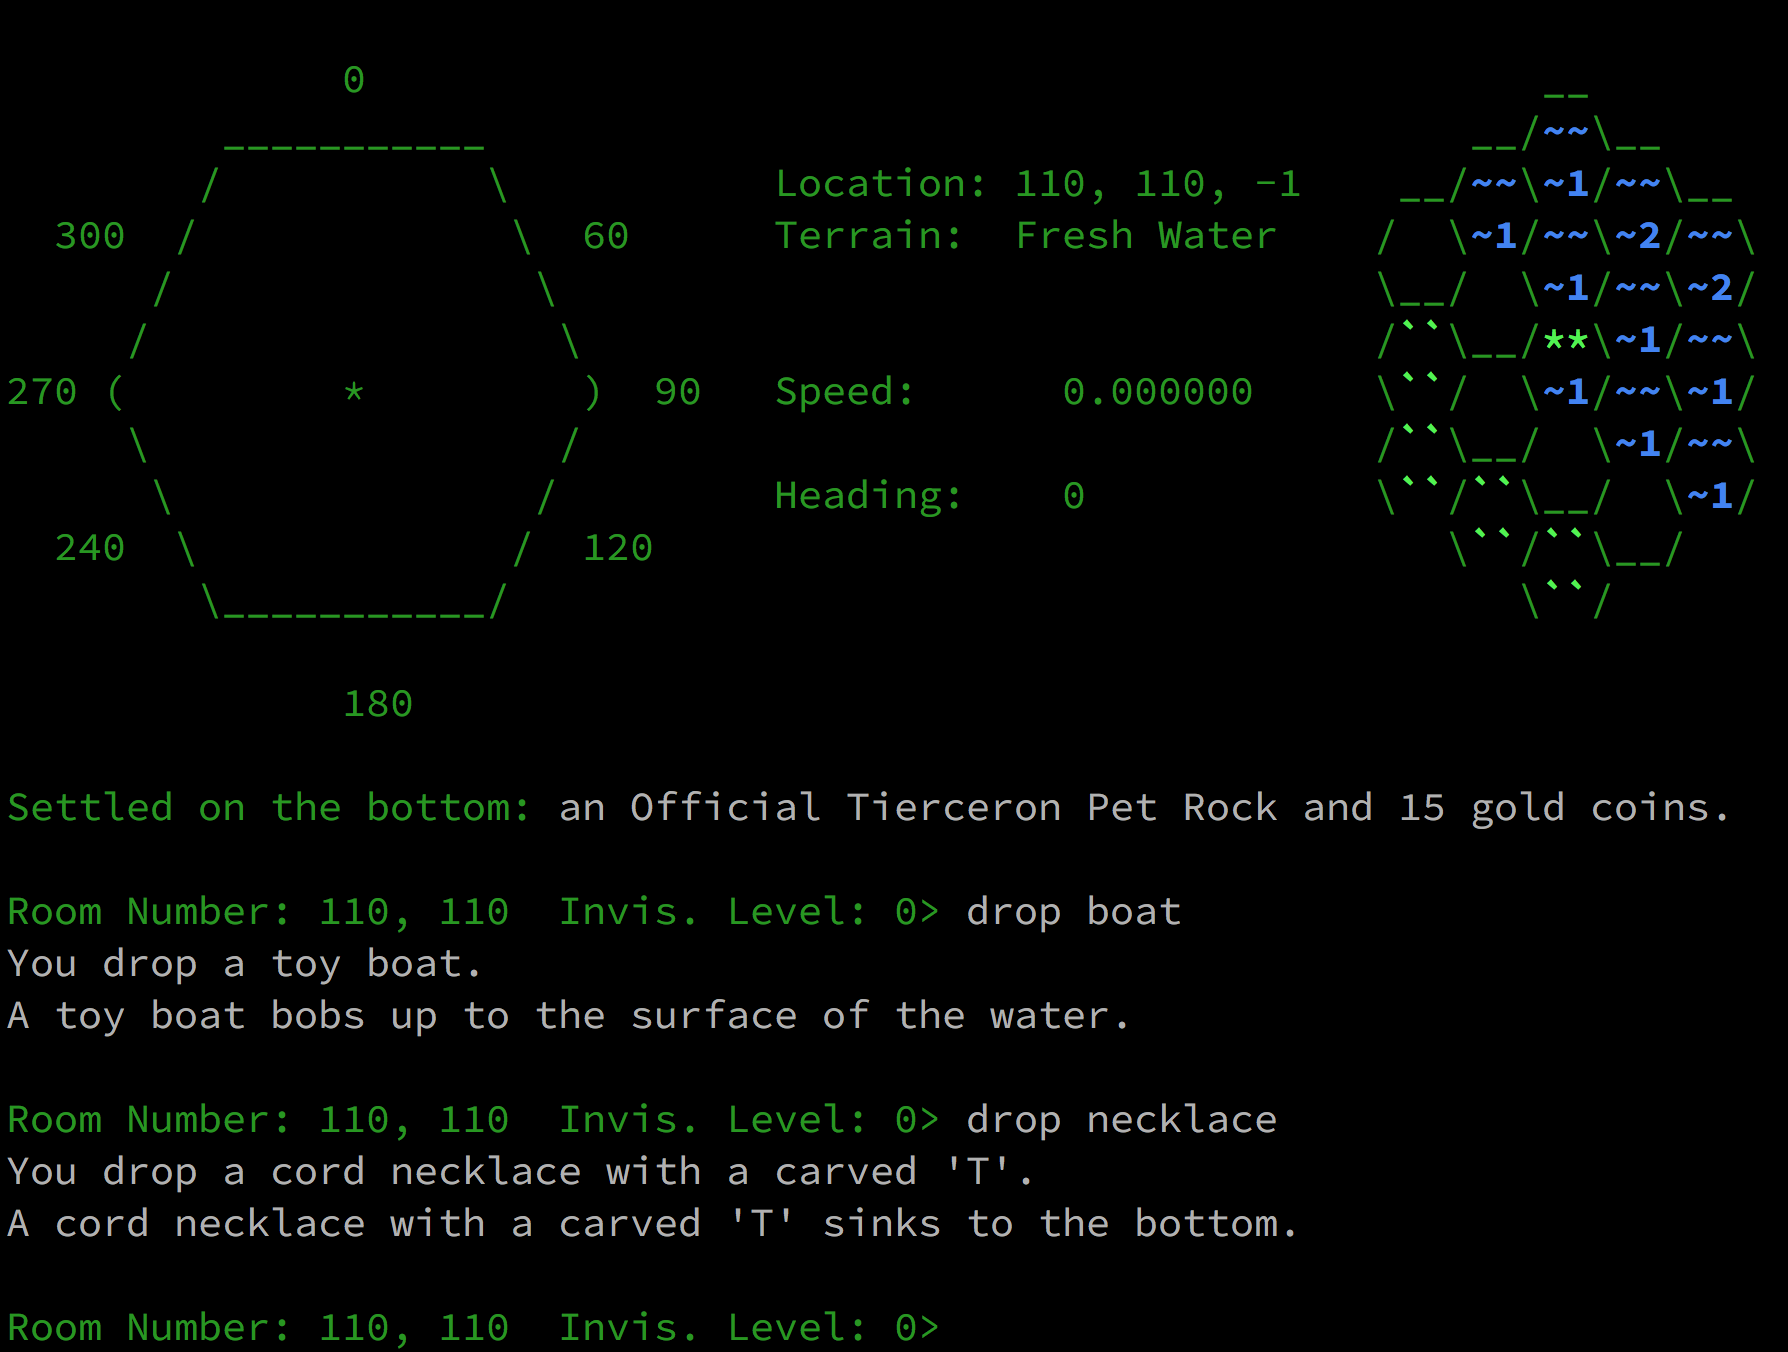 Screenshot of Covenant MUD gameplay. A toy boat is dropped into the water and floats. A necklace is dropped into the water and settles on the bottom.